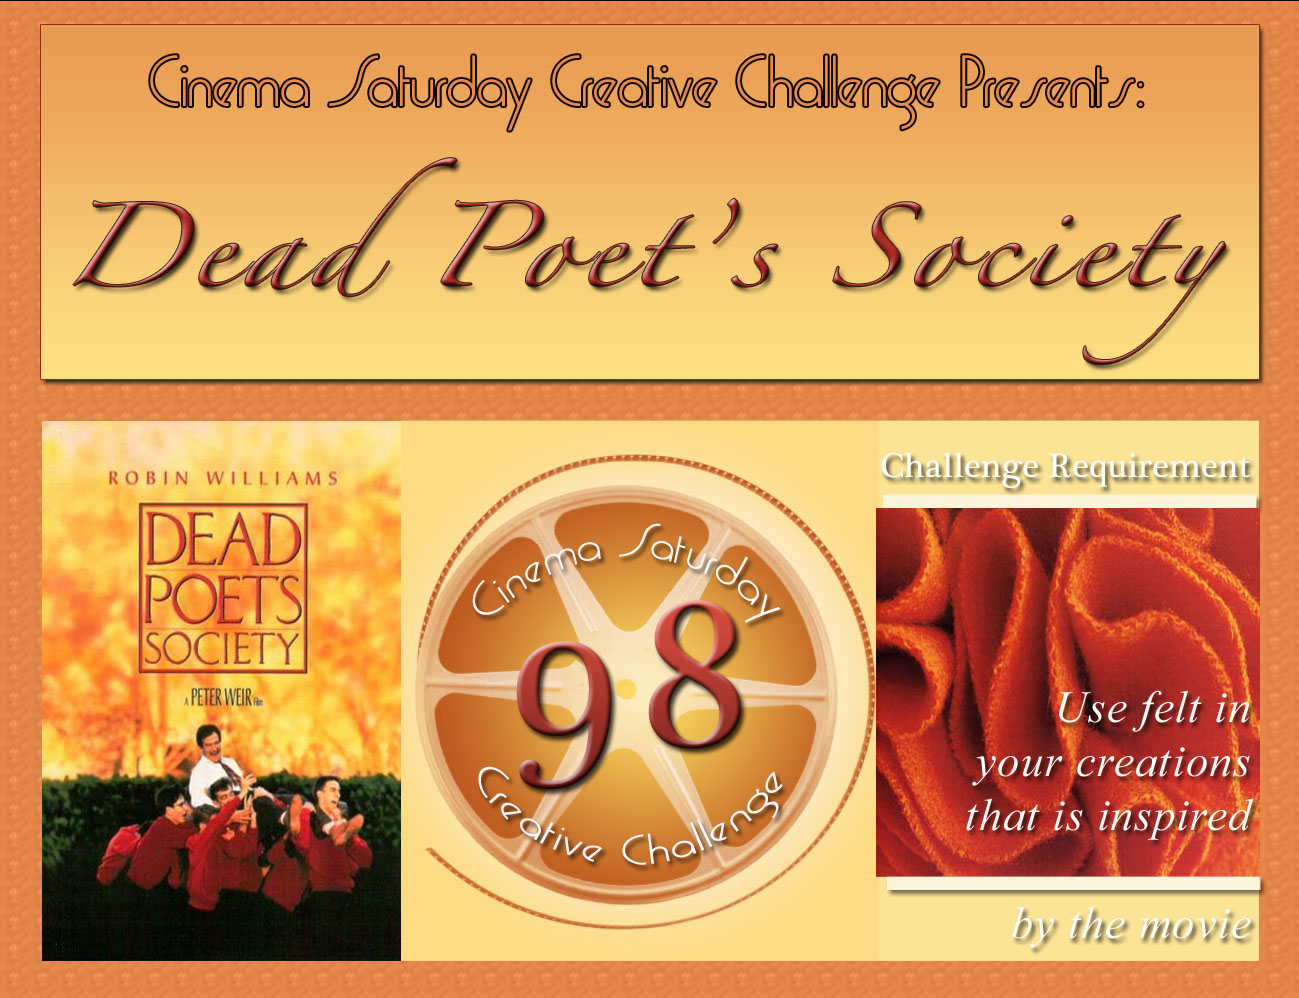 essays on dead poets society order essay cheap dead poets society 522 x 614 jpeg 70kb glasgowlesbians co uk